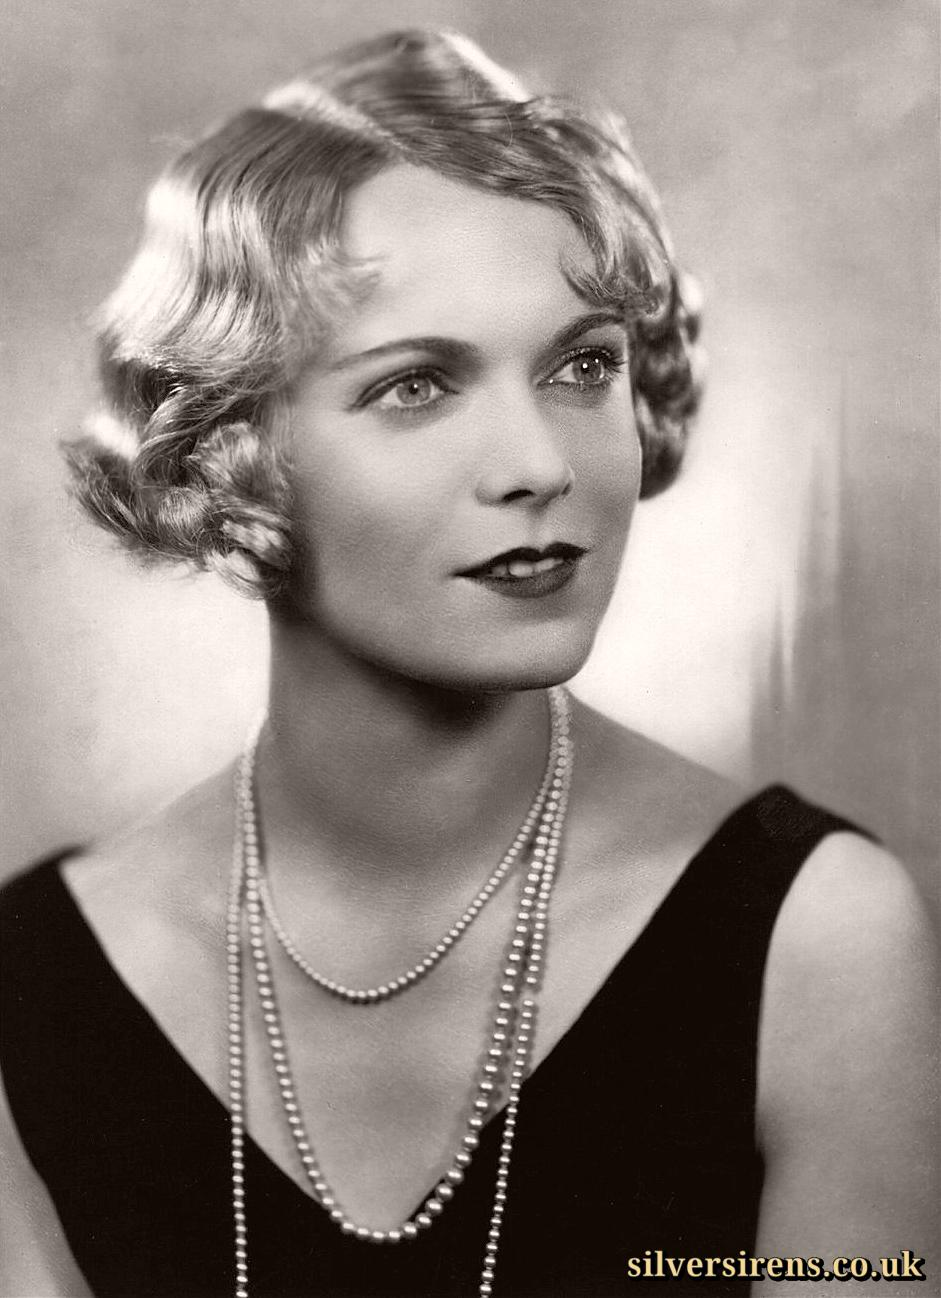 Anna Neagle, British actress, in a publicity photo wears a pearl necklace and a black dress